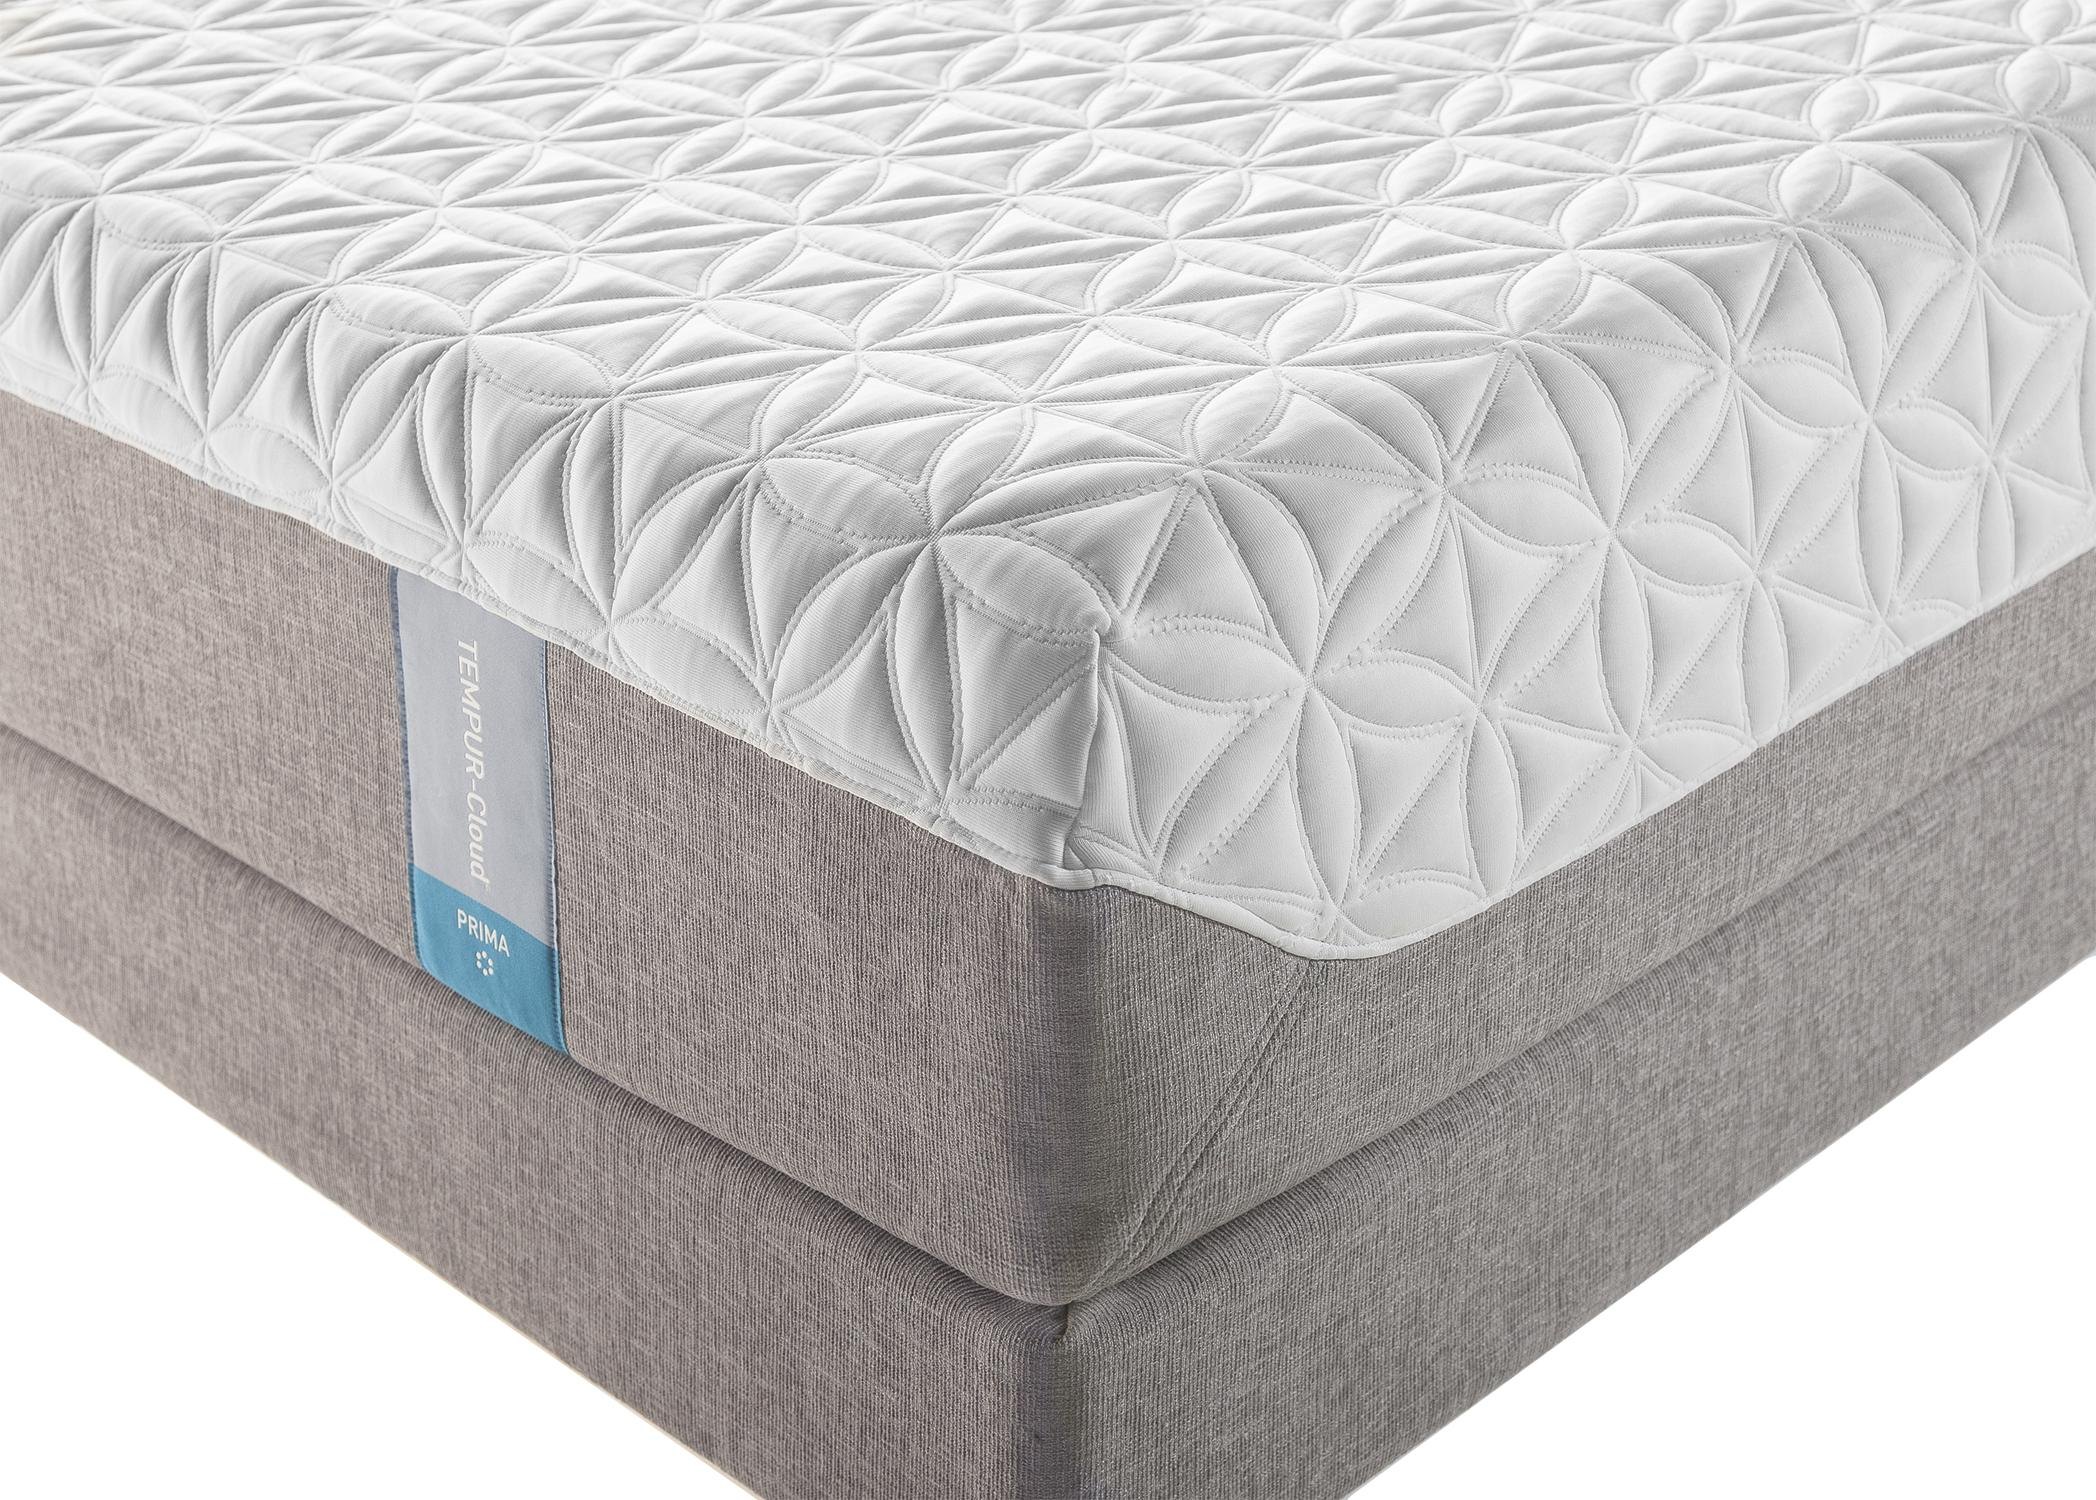 Full Medium Soft Mattress by Tempur Pedic